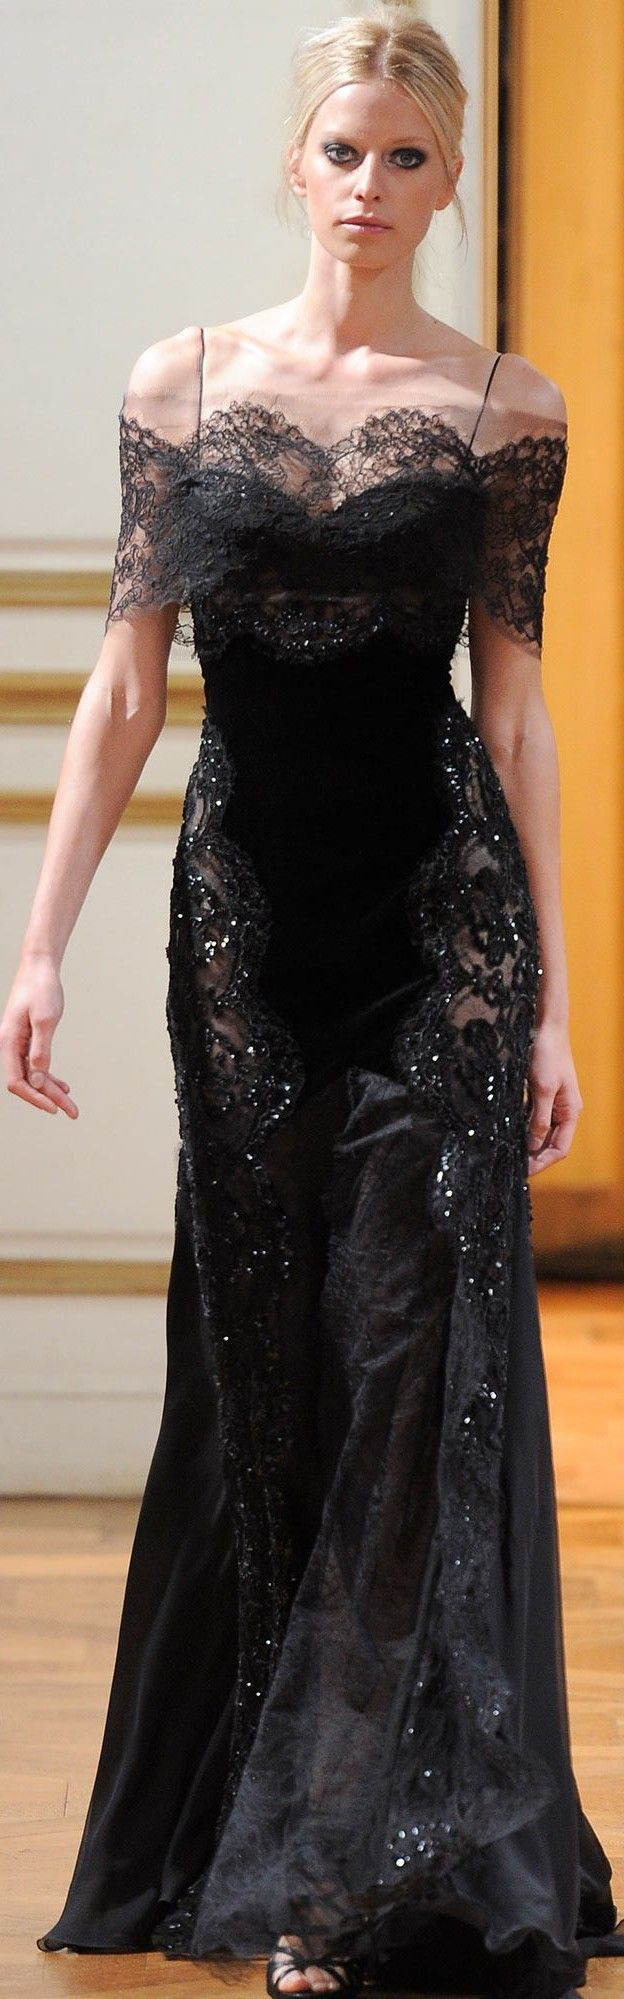 Zuhair Murad Huate Couture Winter 2013 ♥✤   Keep the Glamour   BeStayBeautiful